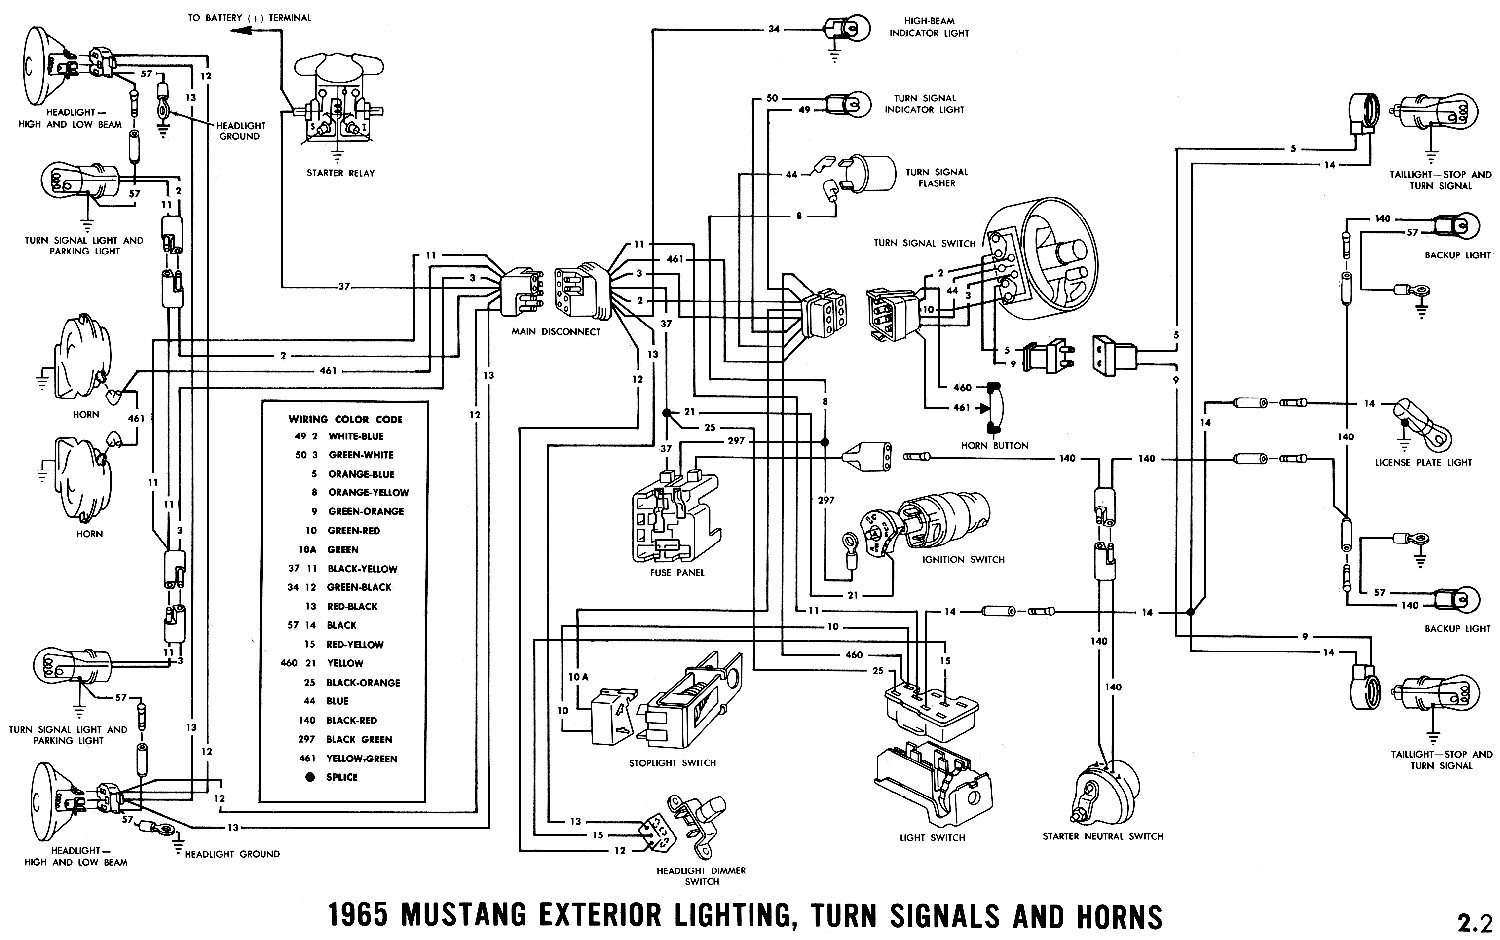 1965 Mustang Wiring Diagram For Lighting Data 70 Chevelle Headlight Diagrams Average Joe Restoration 2006